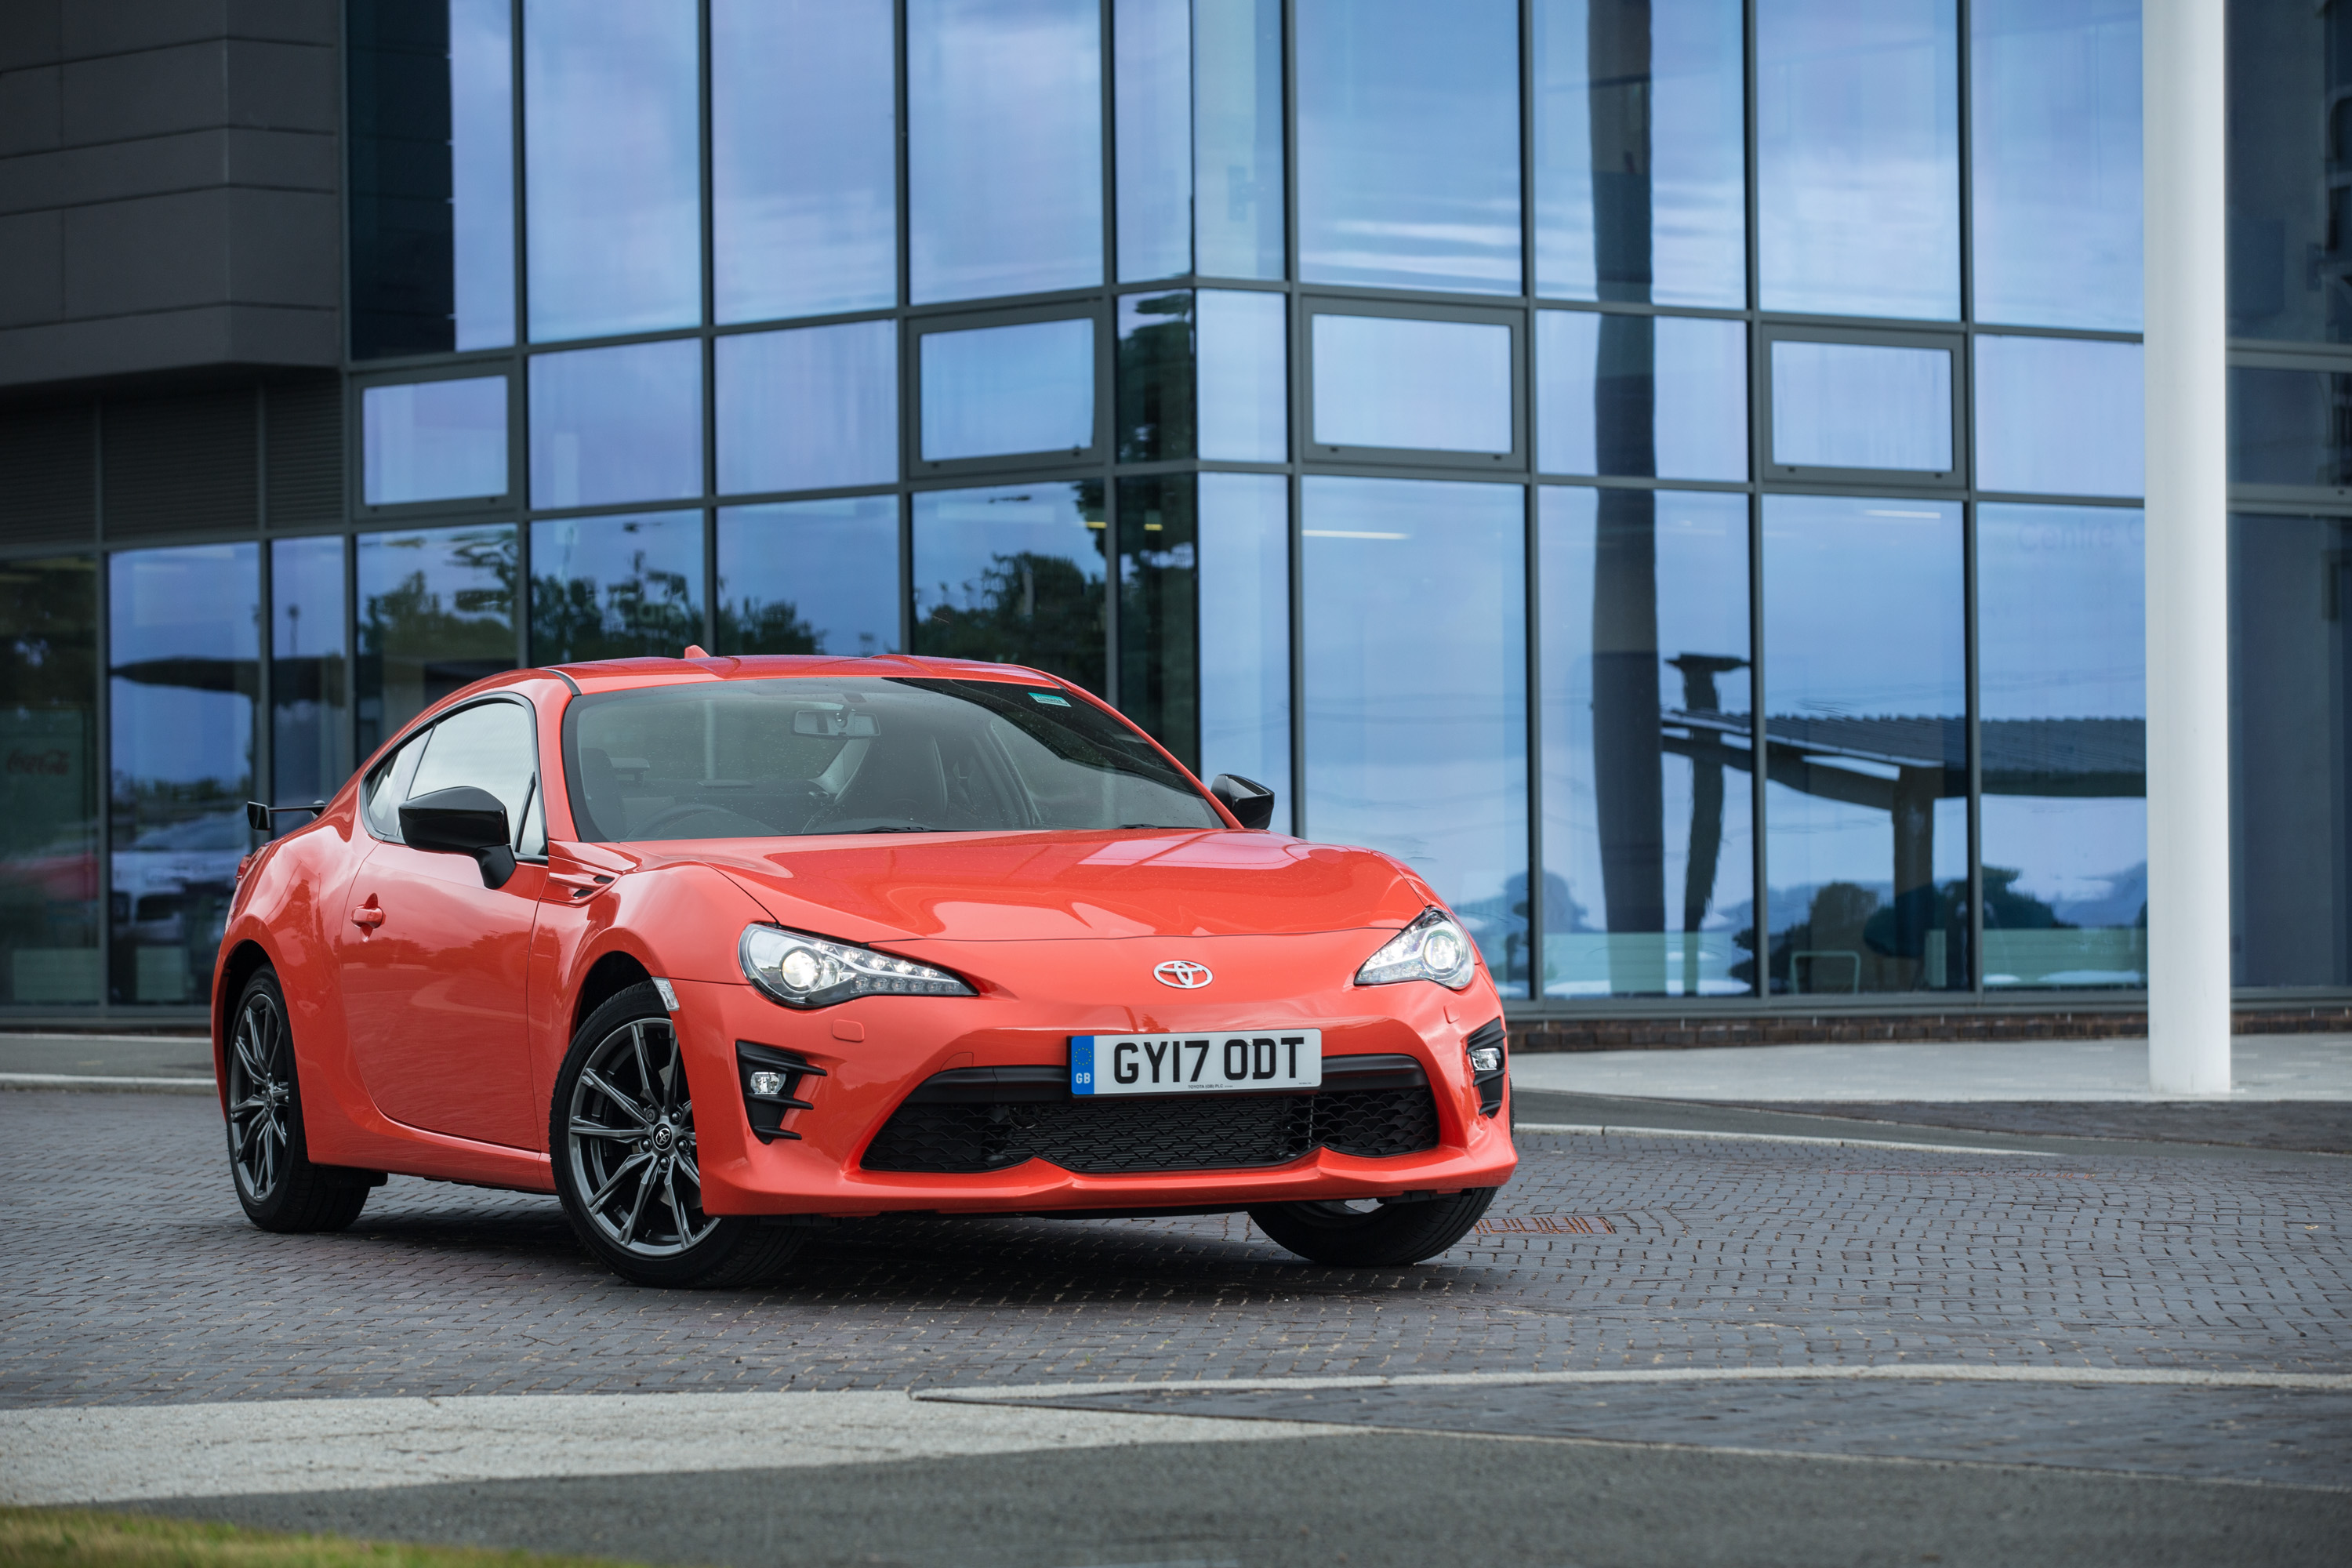 Toyota Gt86 Orange Edition Released In The U K The Drive